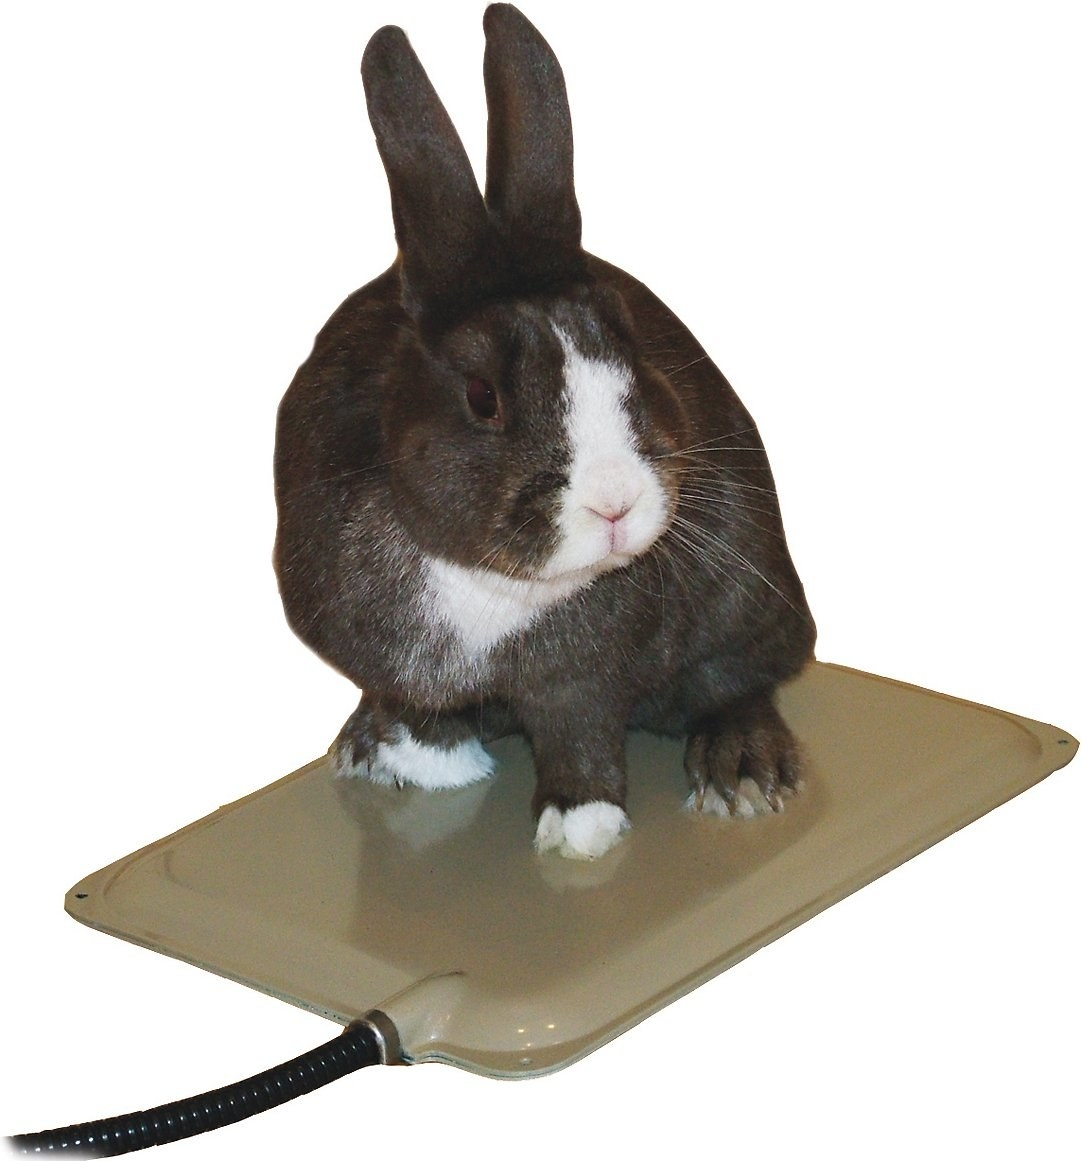 A rabbit on the heated pad